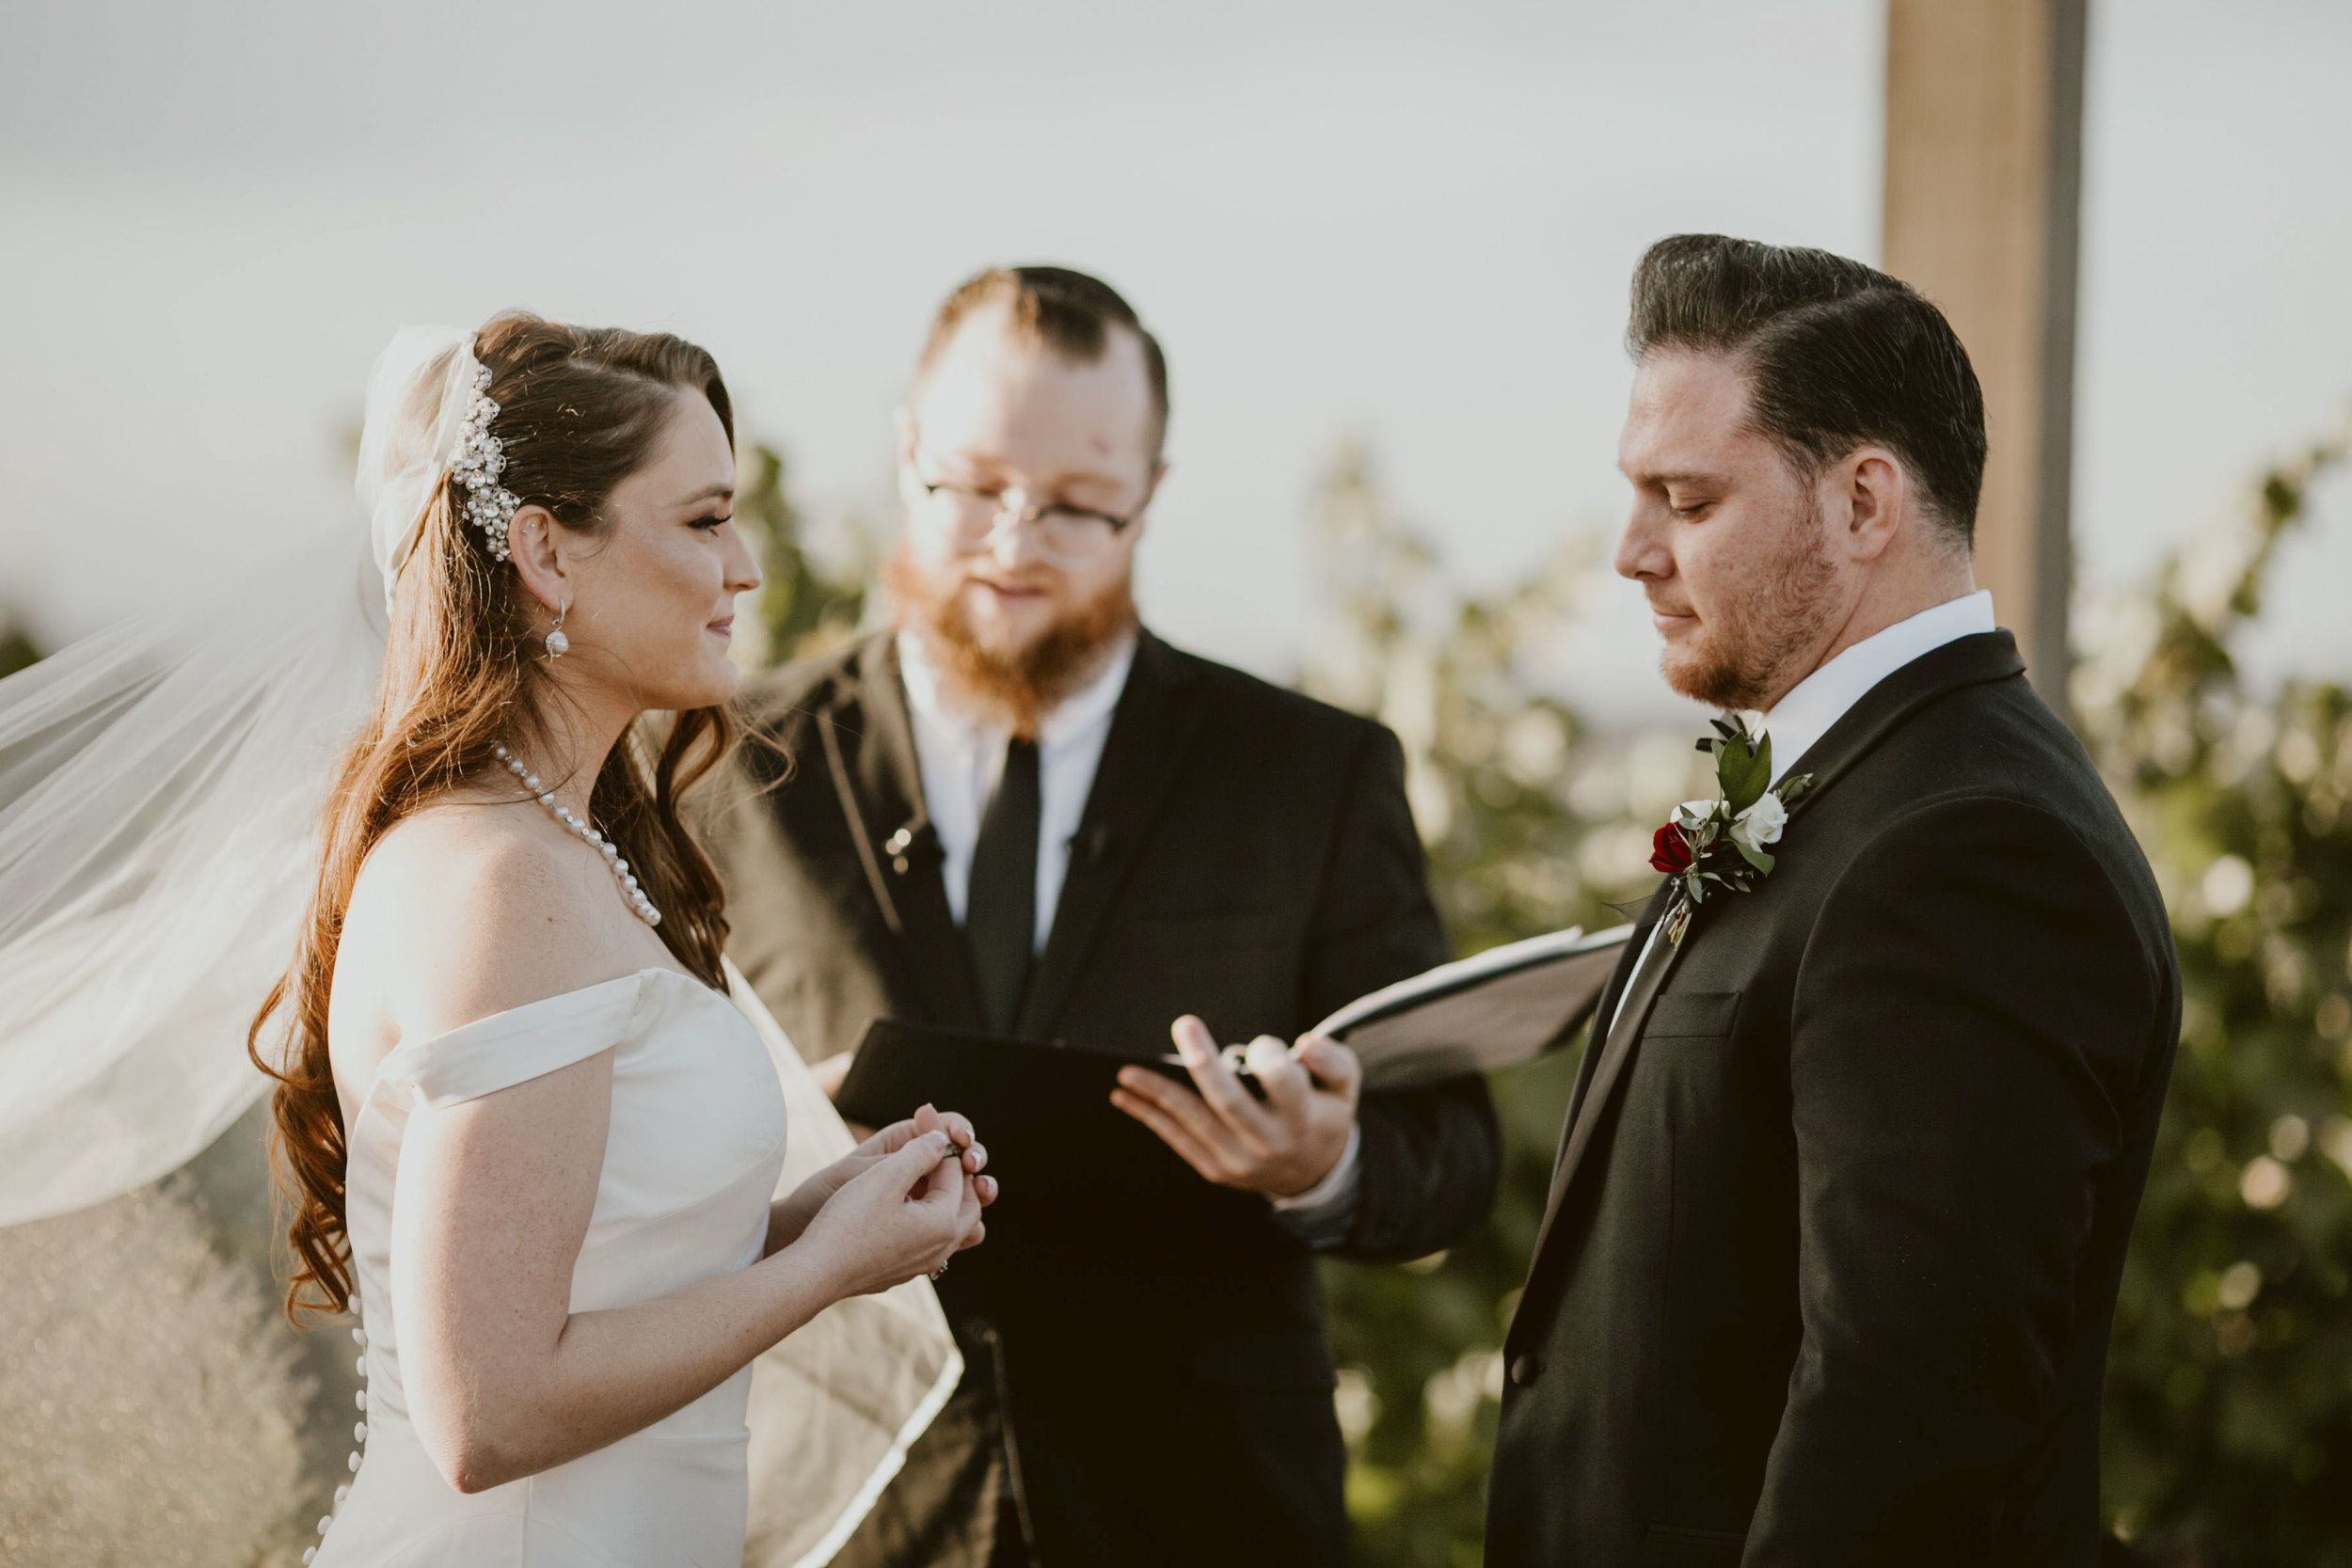 Domenica Beauty _ Hair and Makeup Artist _Wedding _ Temecula, CA _ Catherine and Darryl _ 22.JPG